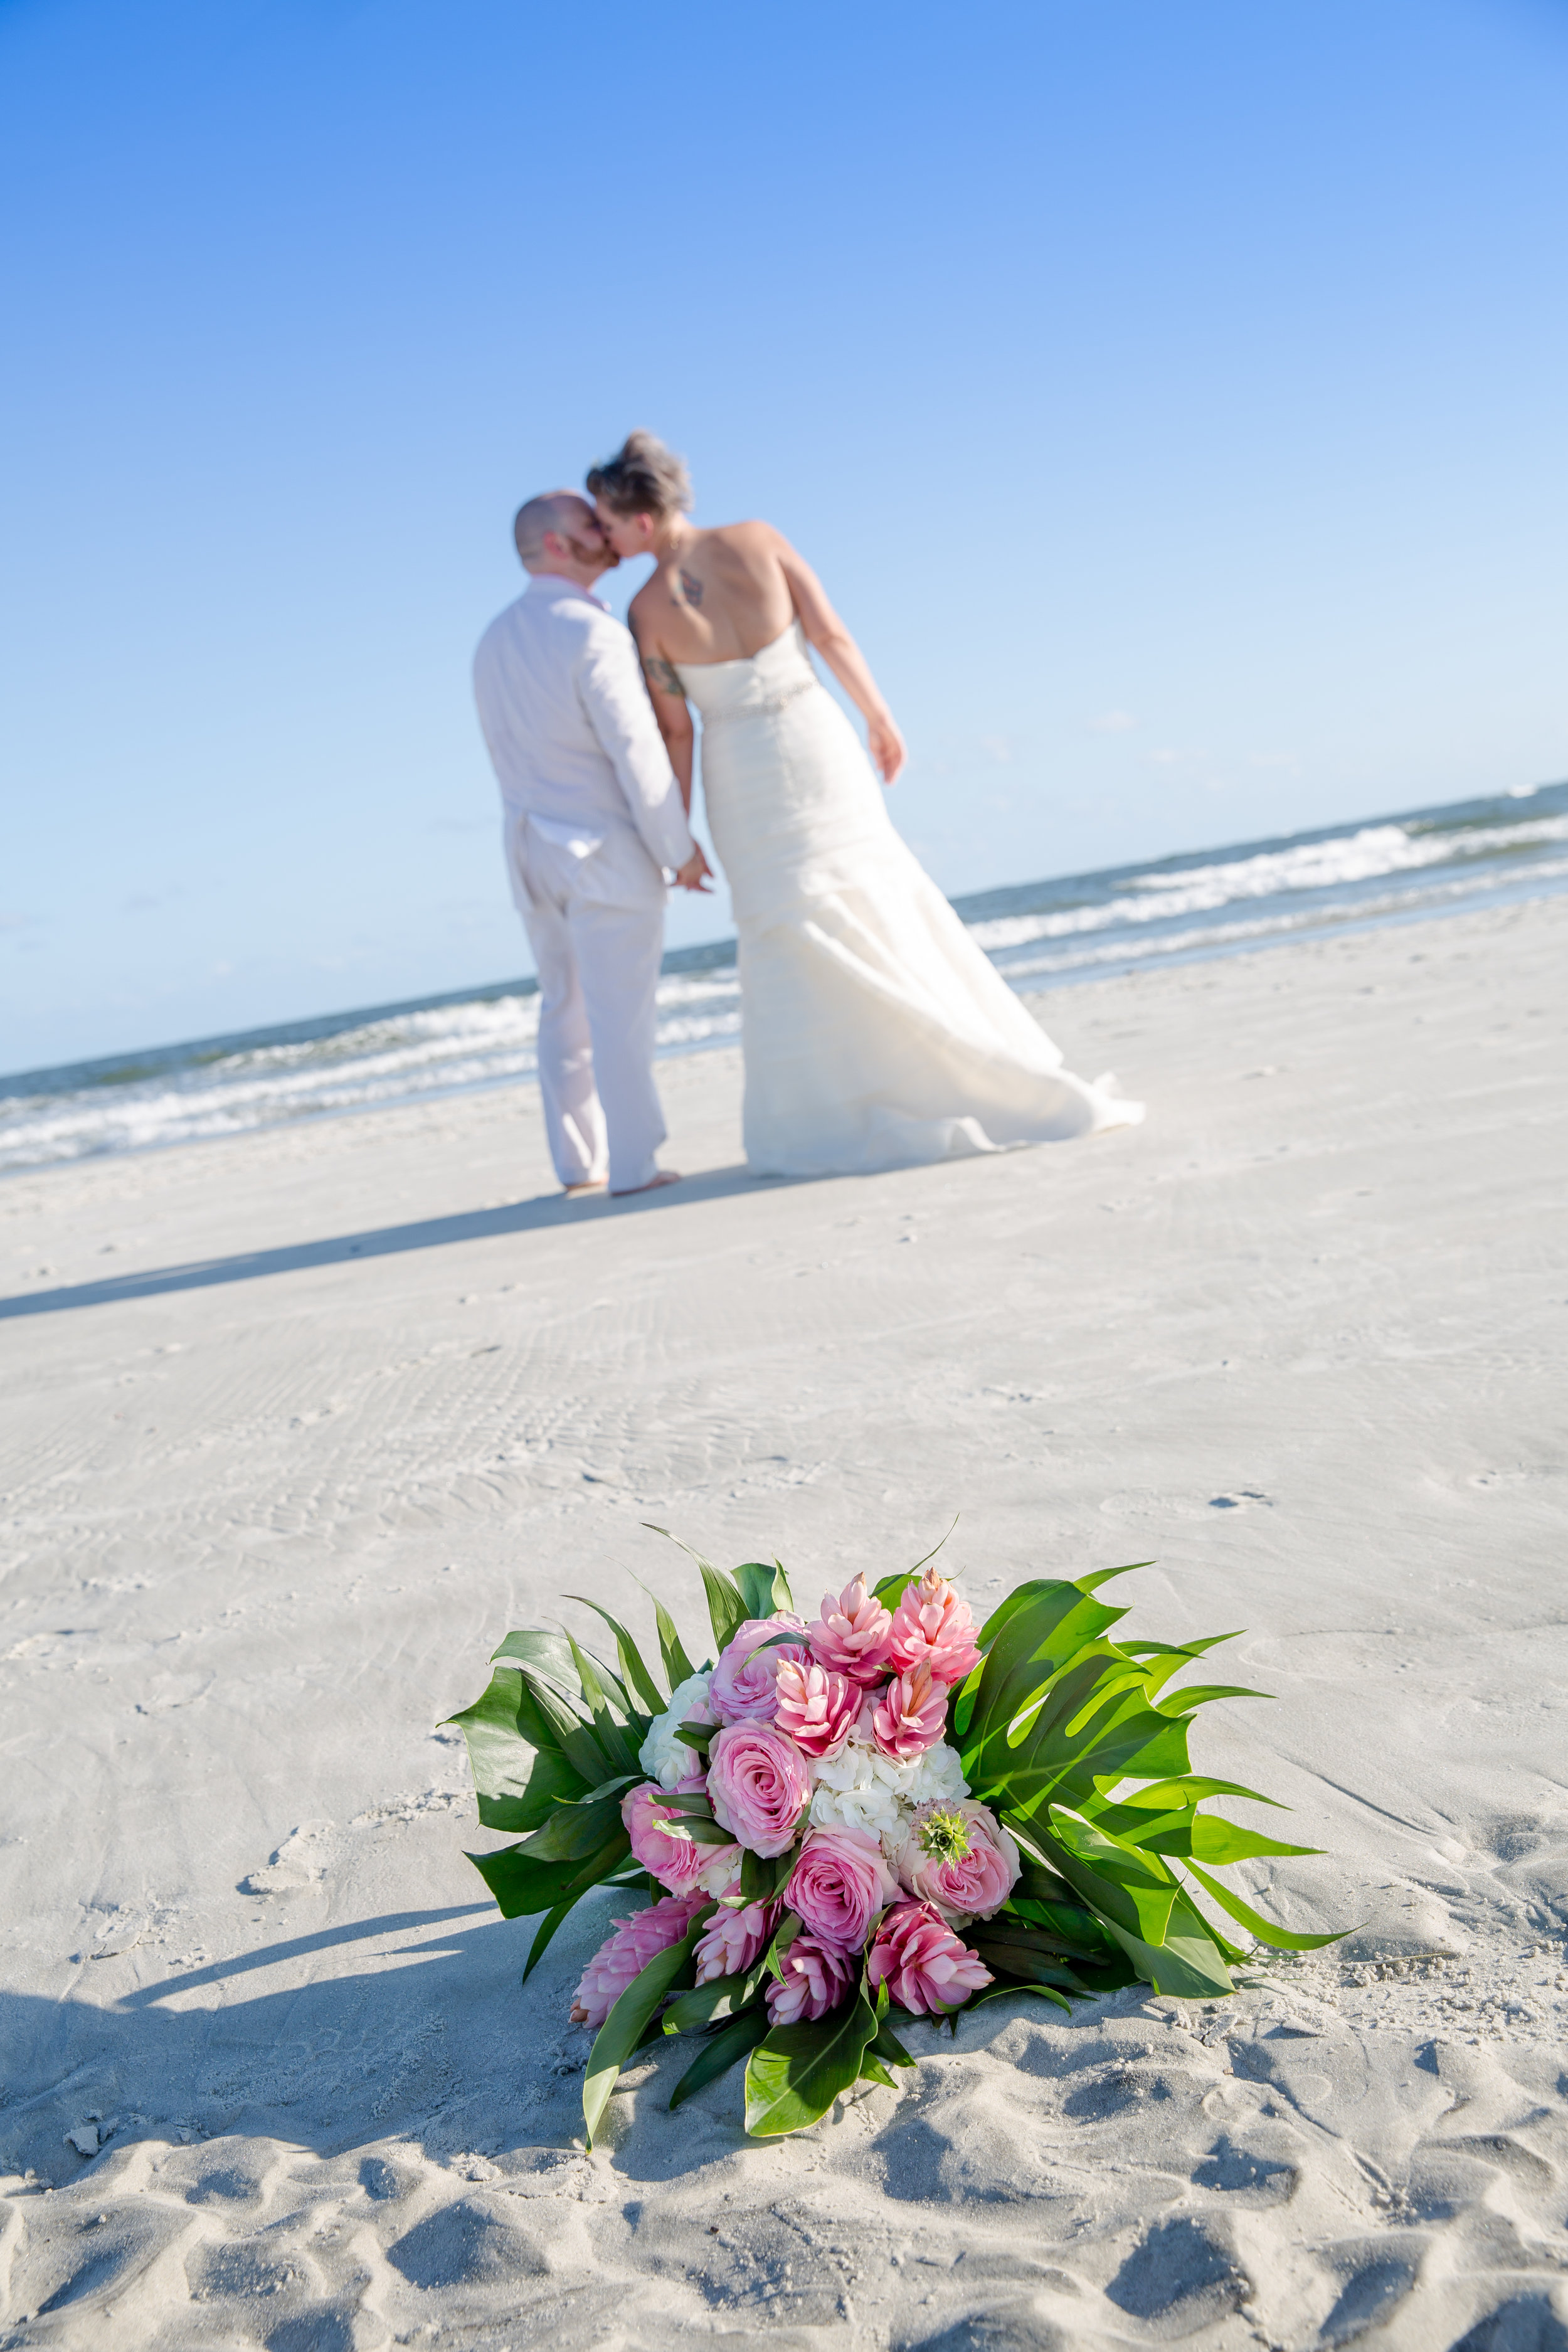 All inclusive beach wedding package